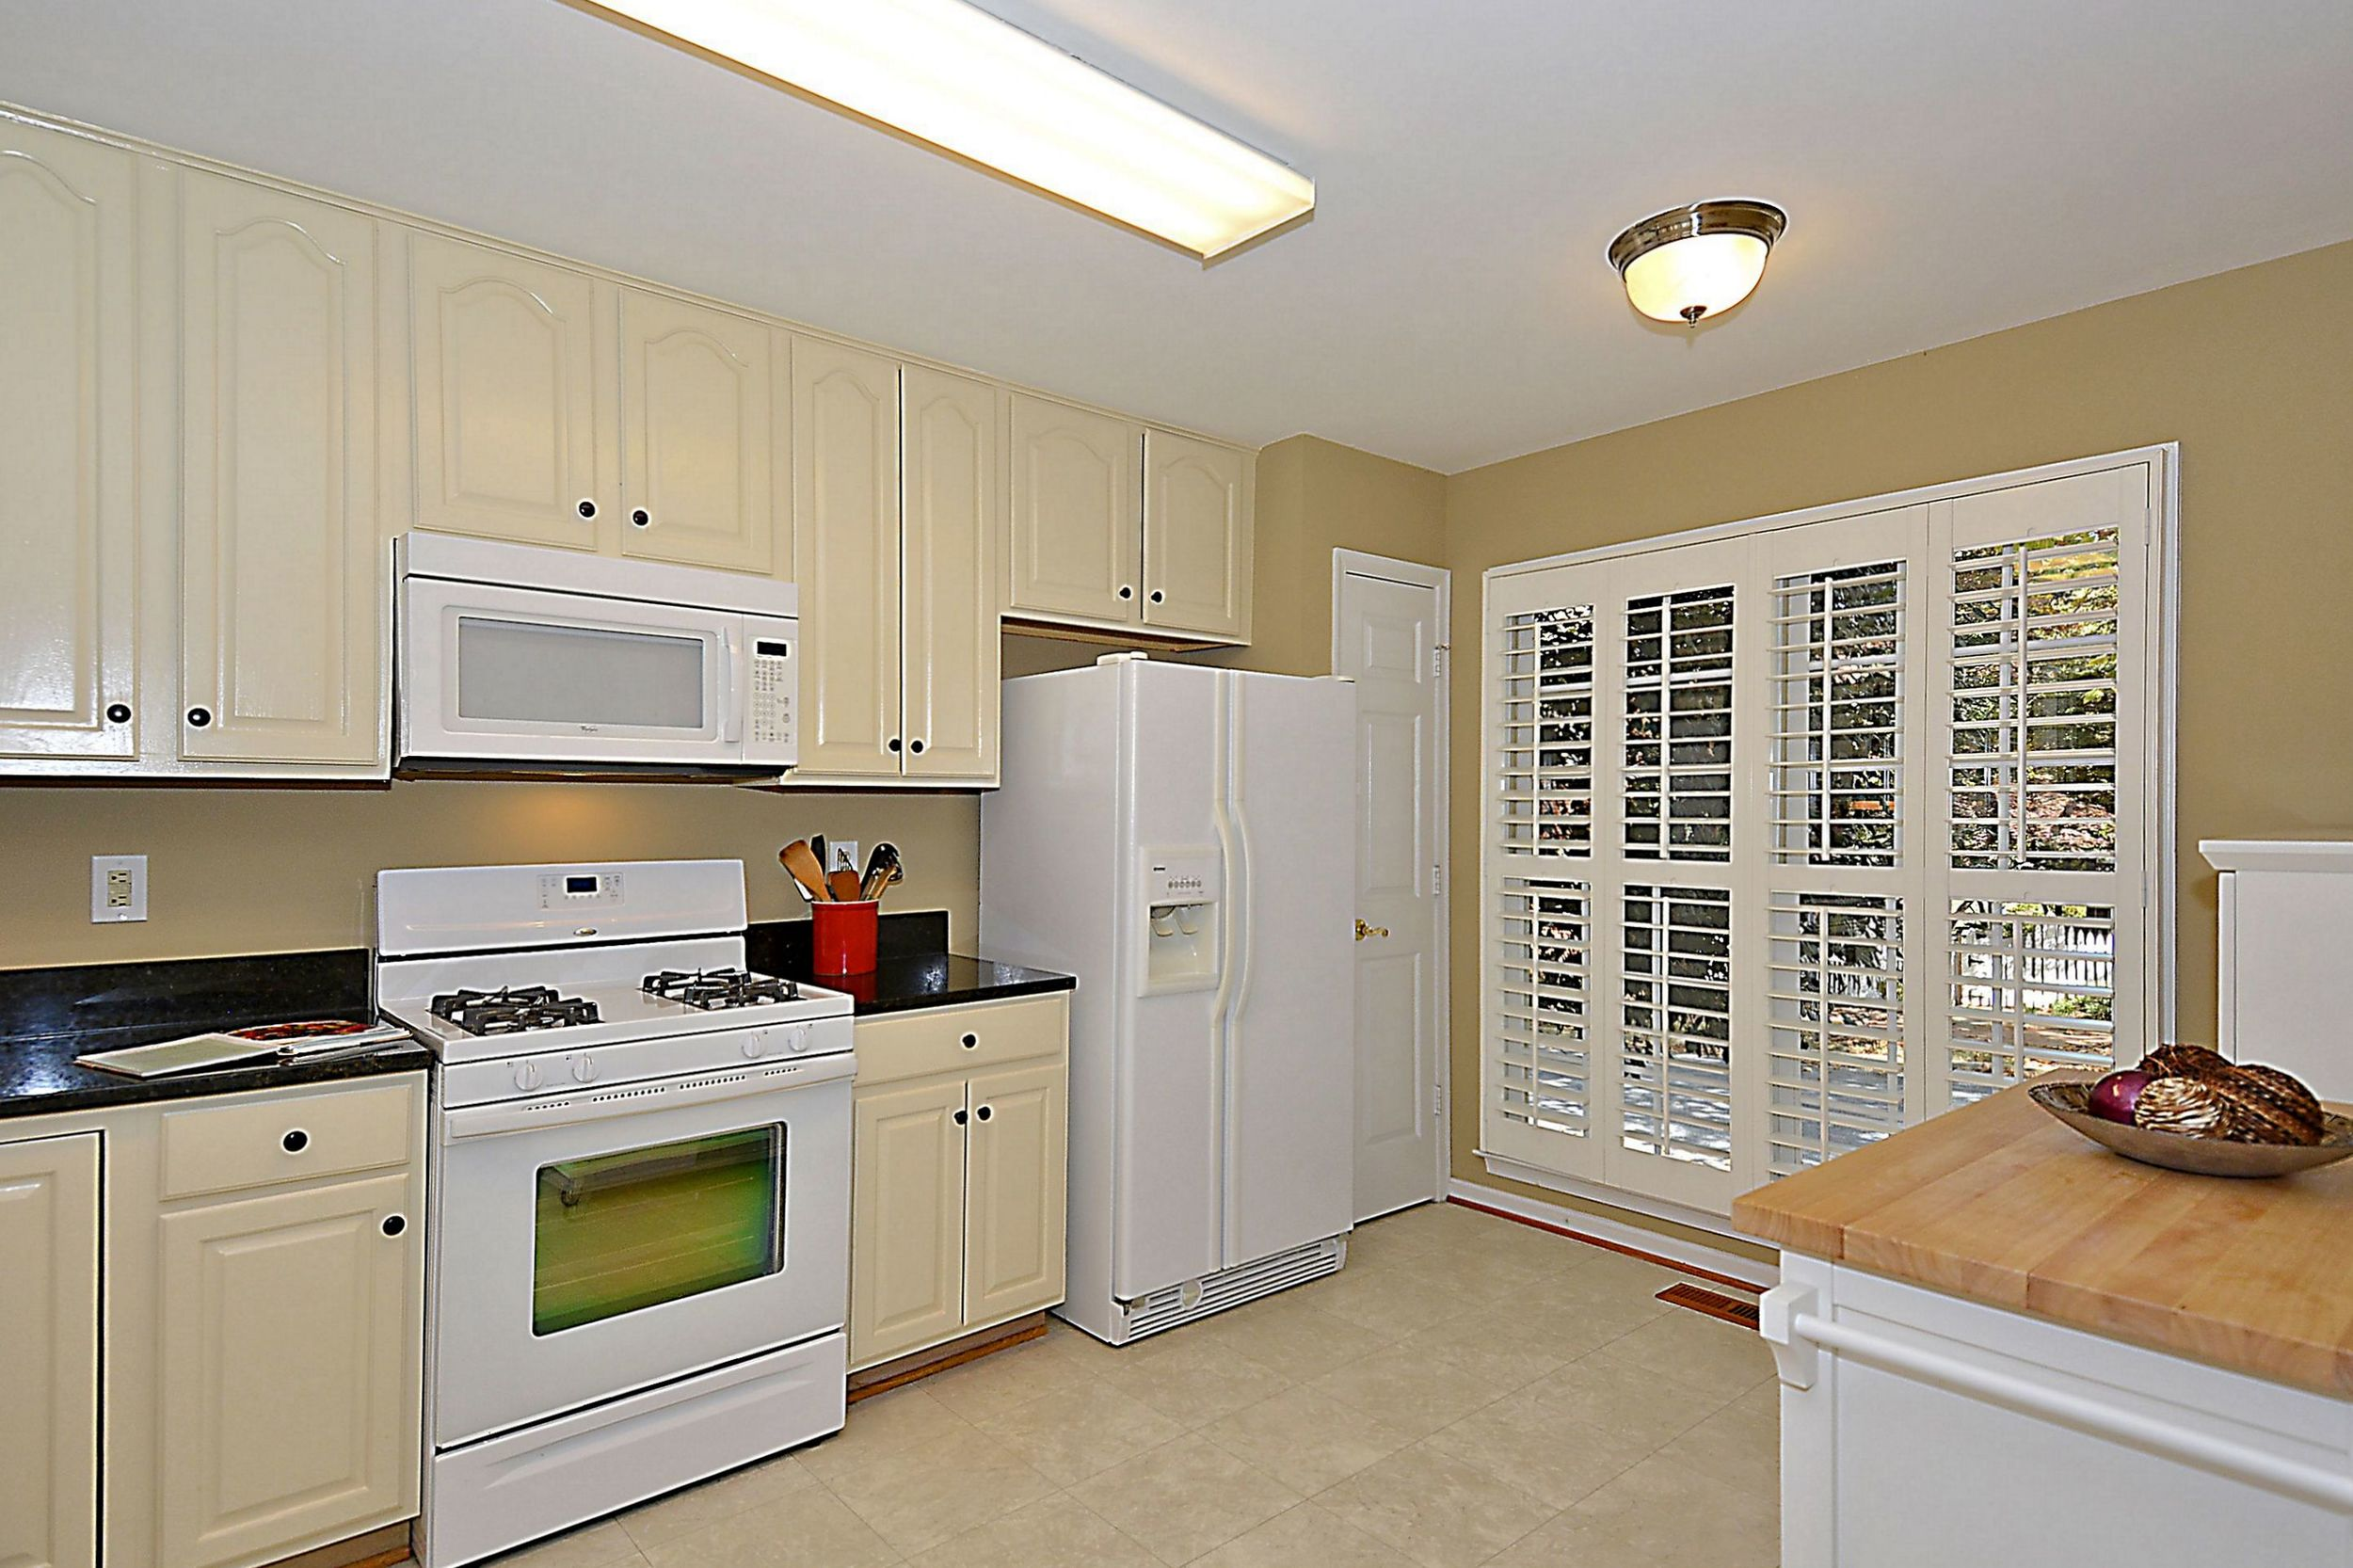 Print_Main Level-Kitchen_1.JPG